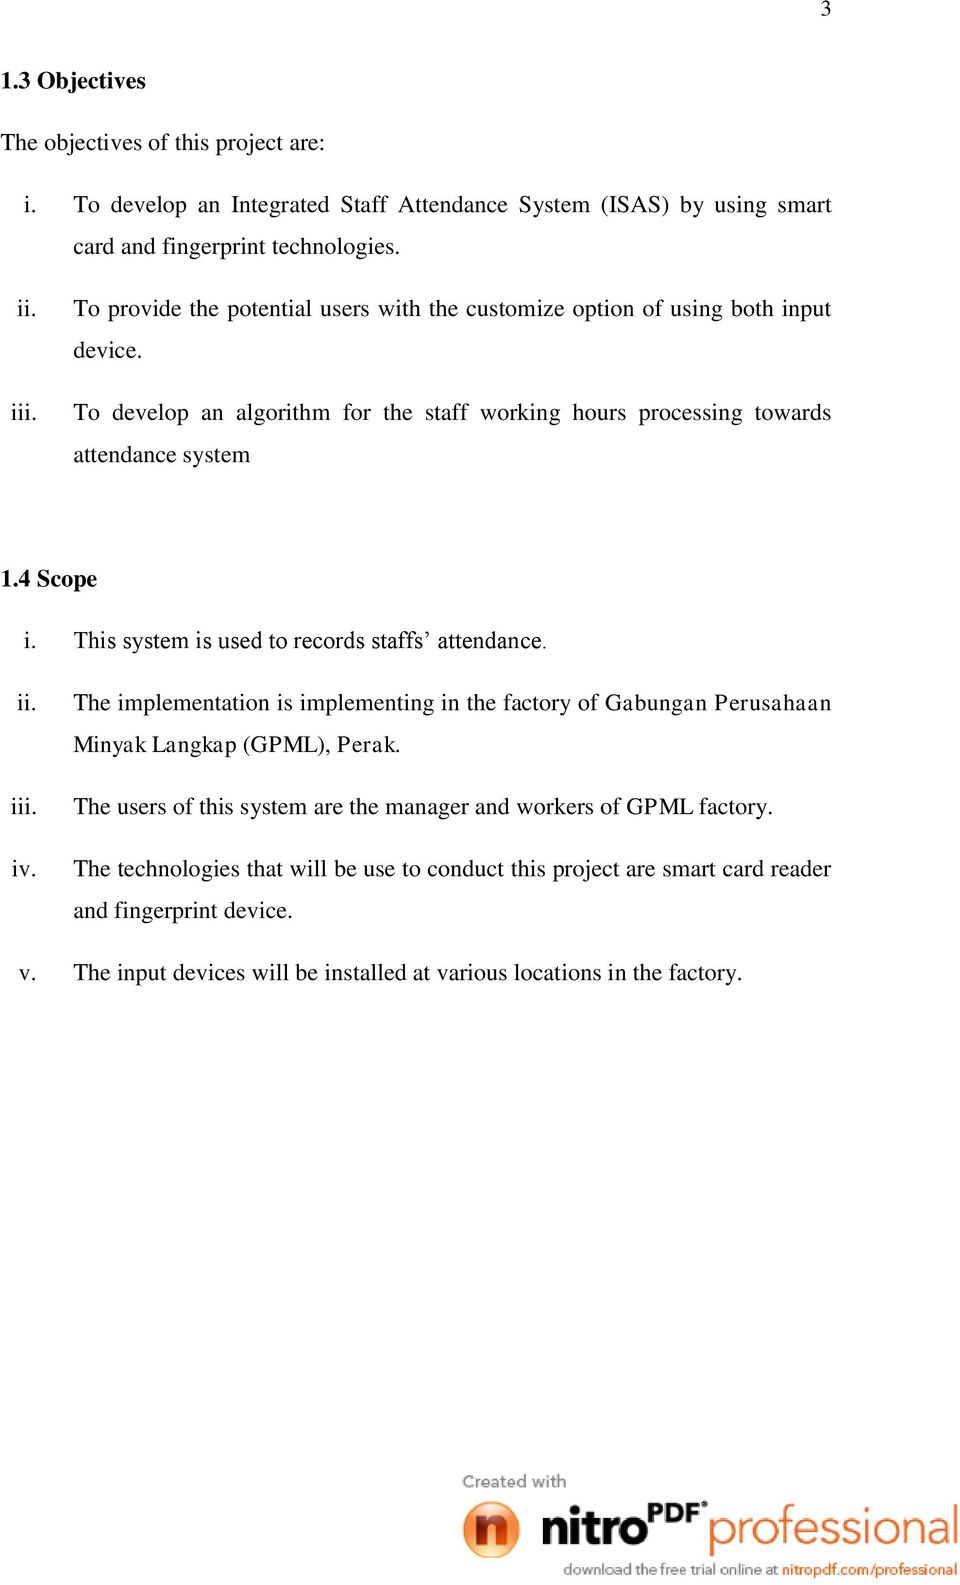 INTEGRATED STAFF ATTENDANCE SYSTEM (ISAS) WEE PEK LING - PDF